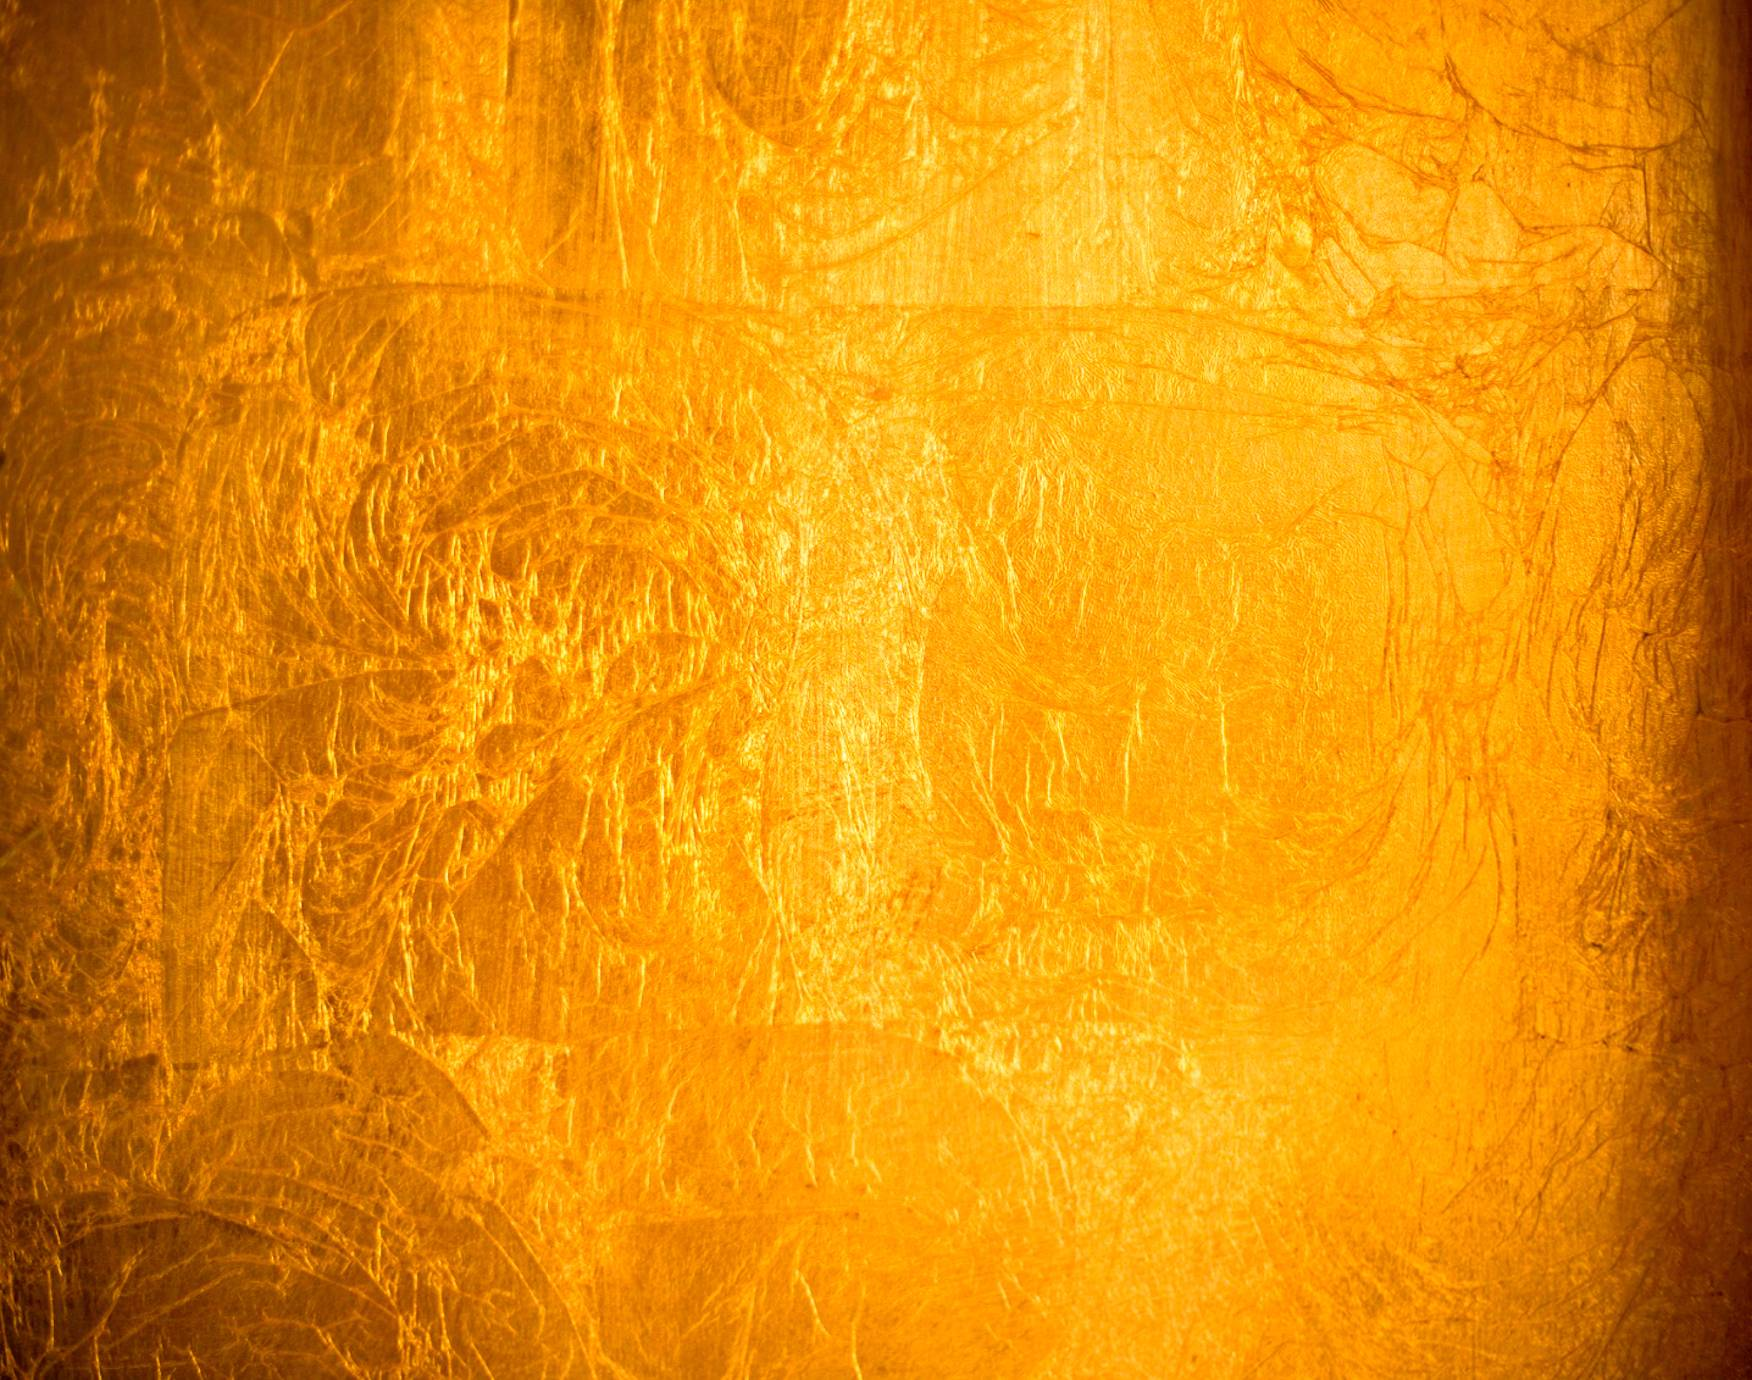 gold background images hd